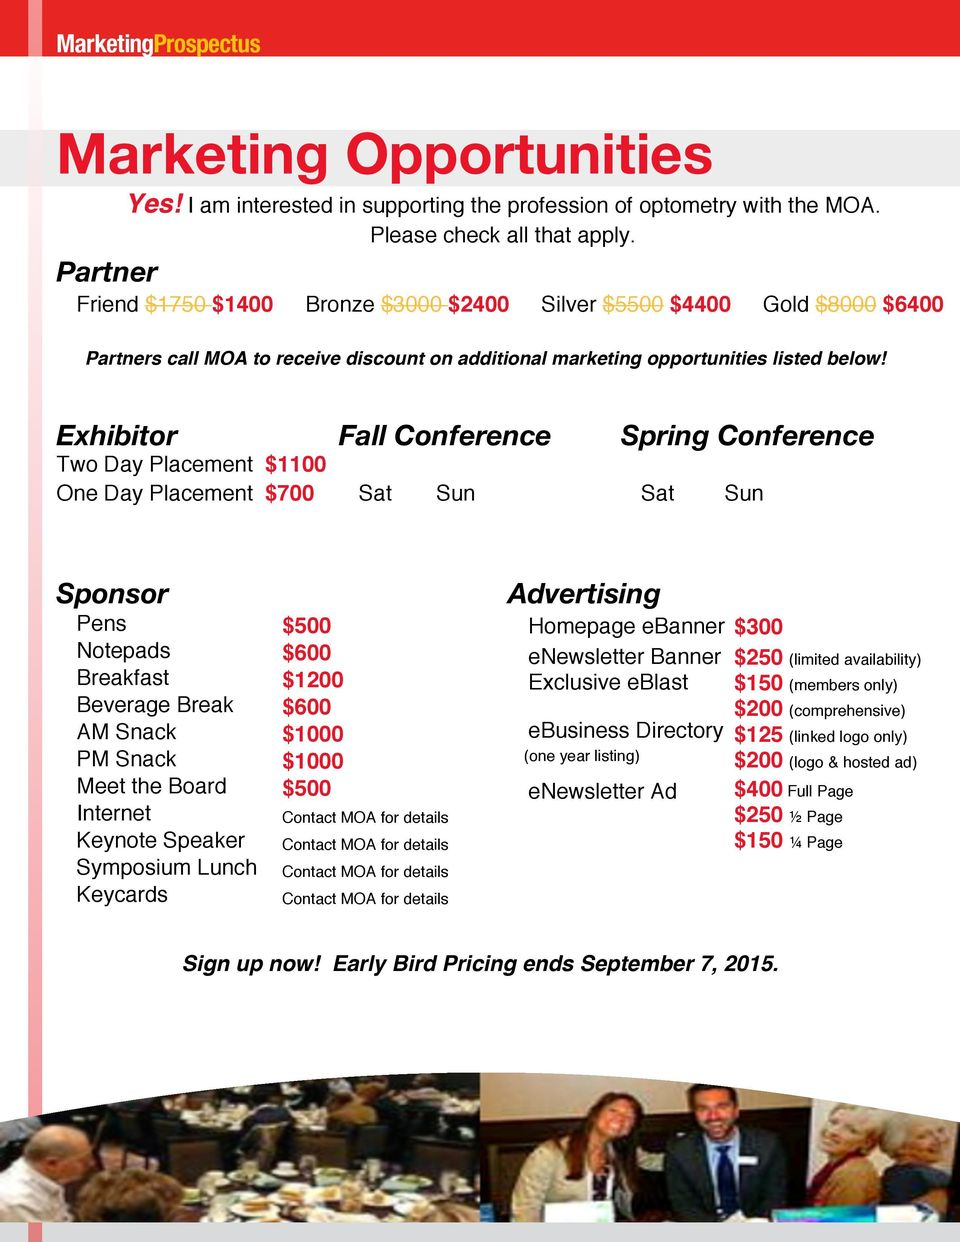 Exhibitor Fall Conference Spring Conference Two Day Placement $1100 One Day Placement $700 Sat Sun Sat Sun Sponsor Pens Notepads Breakfast Beverage Break AM Snack PM Snack Meet the Board Internet